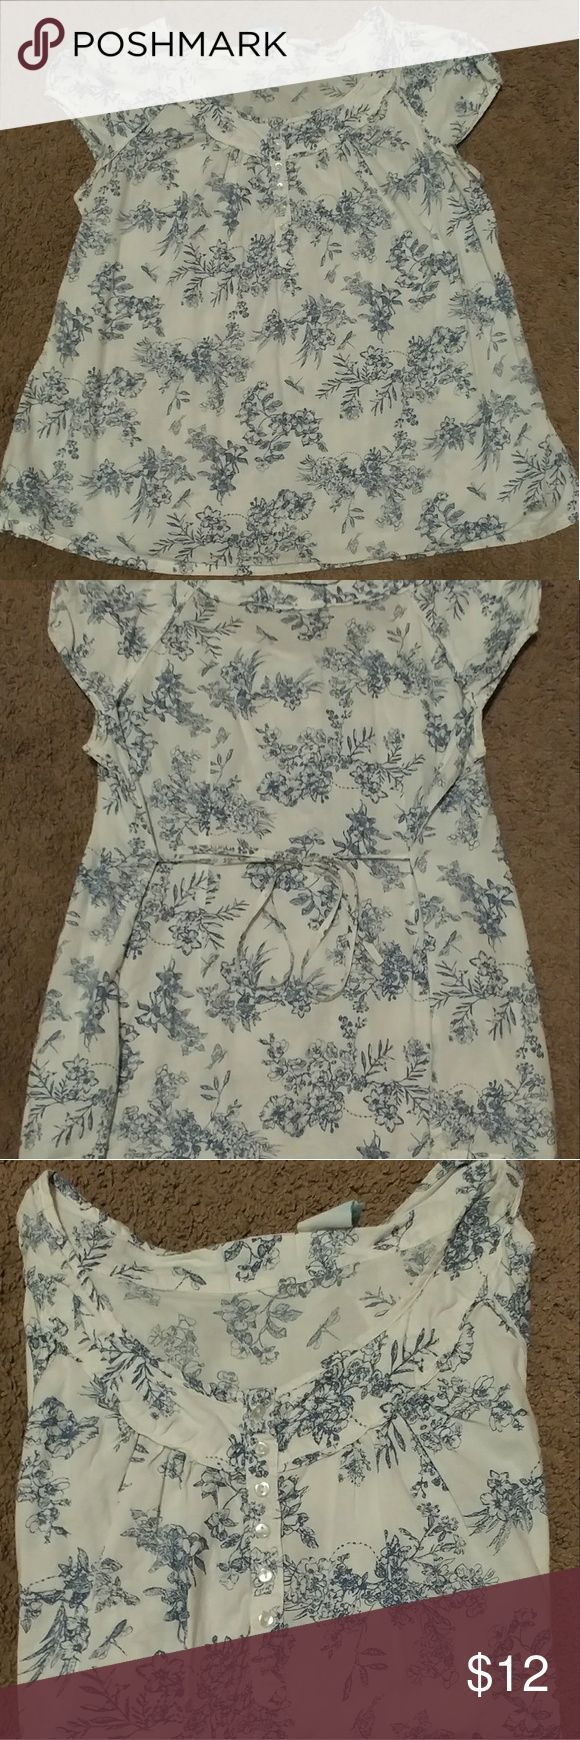 Women's Maternity Top Pretty floral maternity top, size medium with ties on the back. Nice and light for the warmer months. announcements Tops